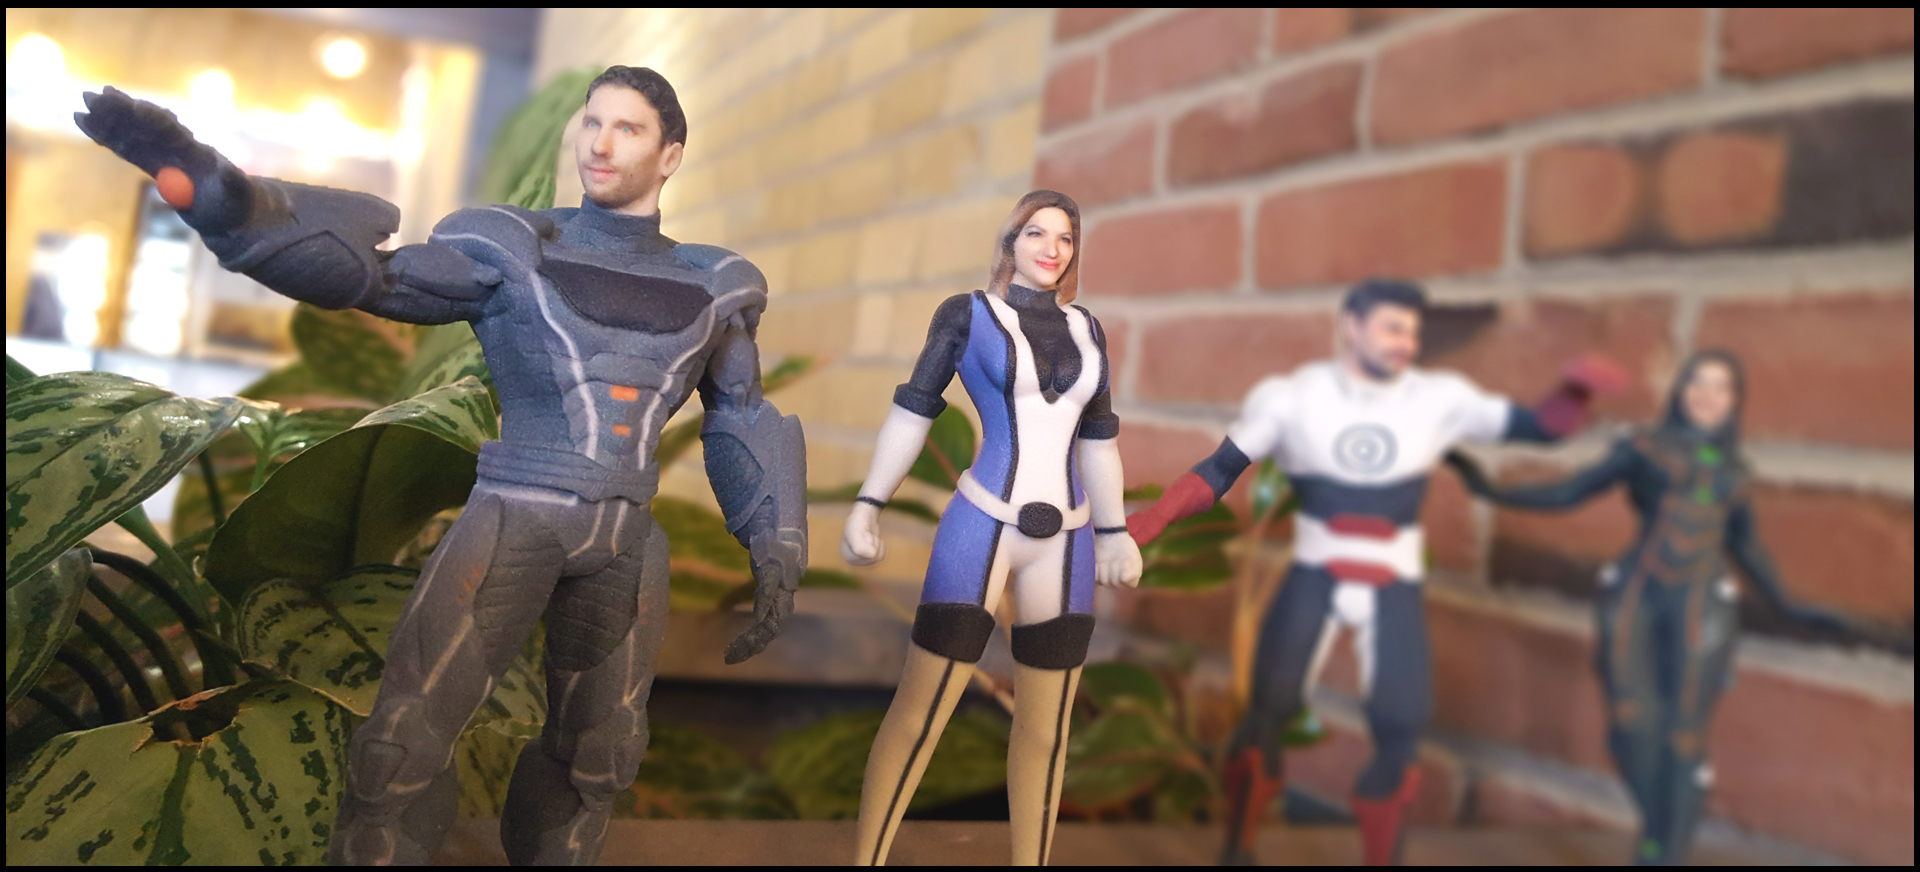 Superheroes - 3D Printing Action Figures | My 3D Agency